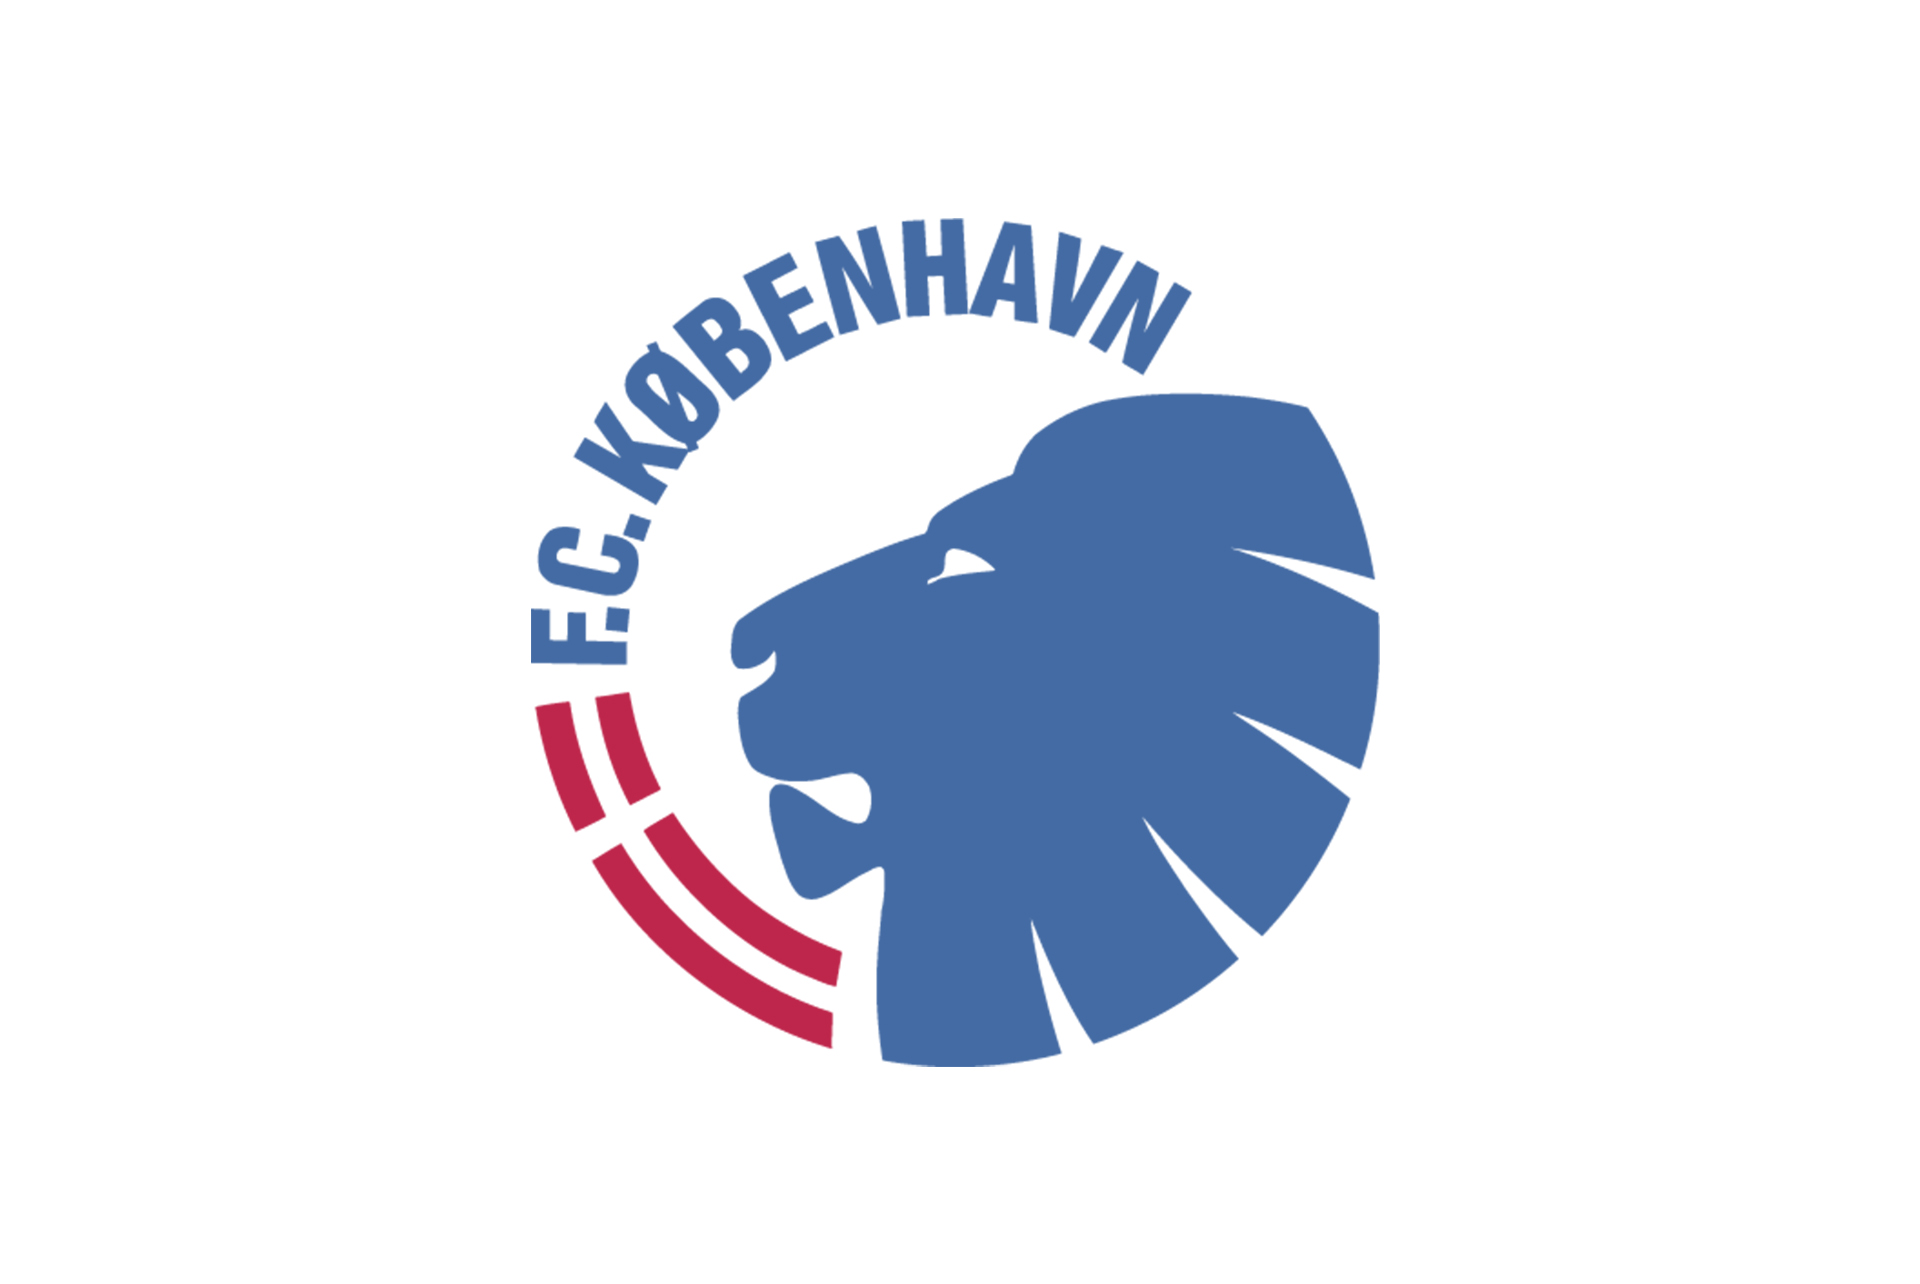 Best Football Logos fc copenhagen